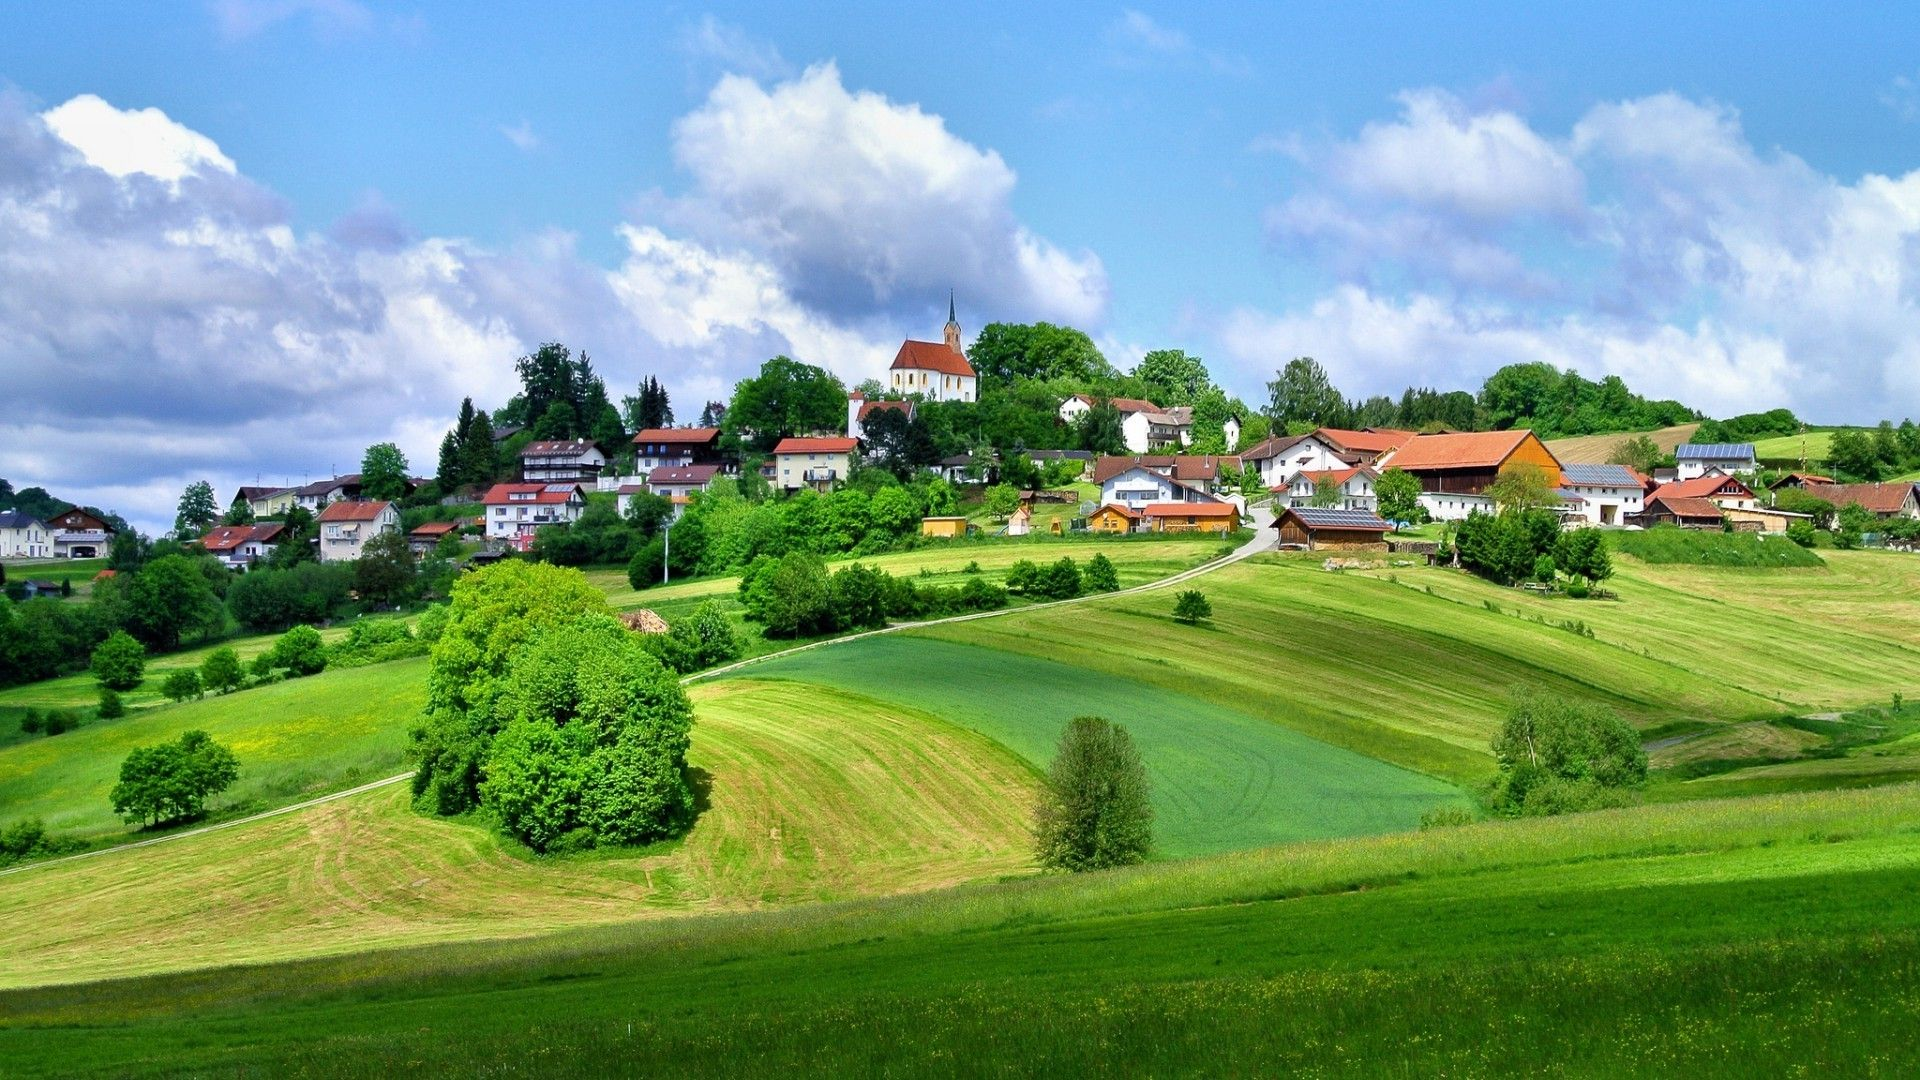 Photos Of The Countryside